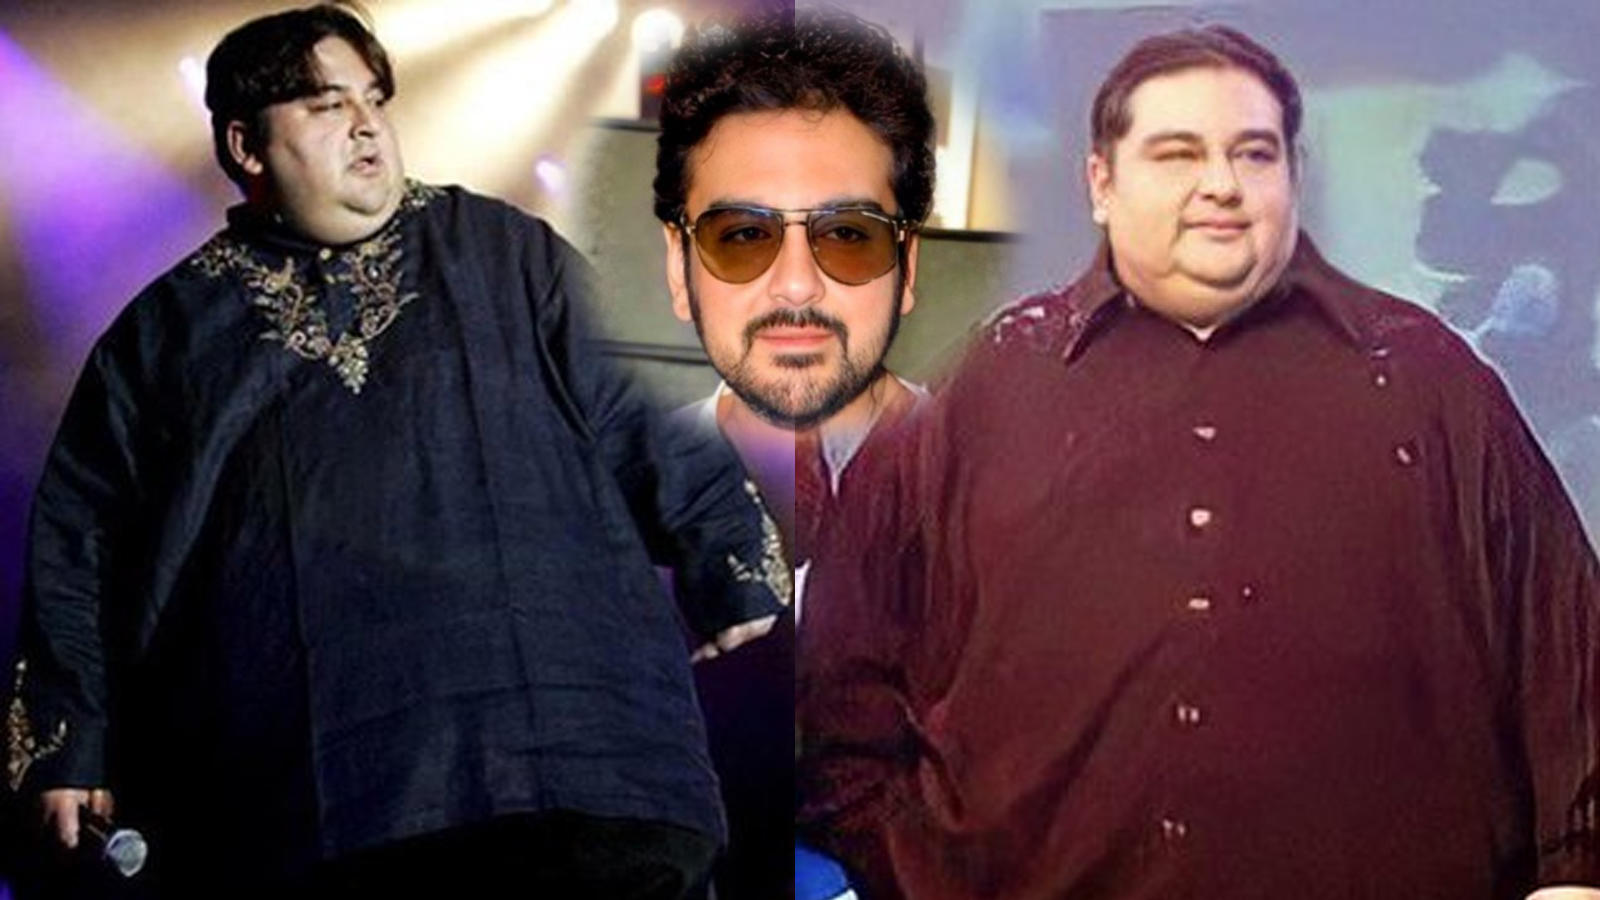 adnan-sami-slams-netizen-who-commented-on-his-eating-habits-tweets-never-argue-with-me-about-food-as-i-have-researched-eaten-enough-for-many-generations